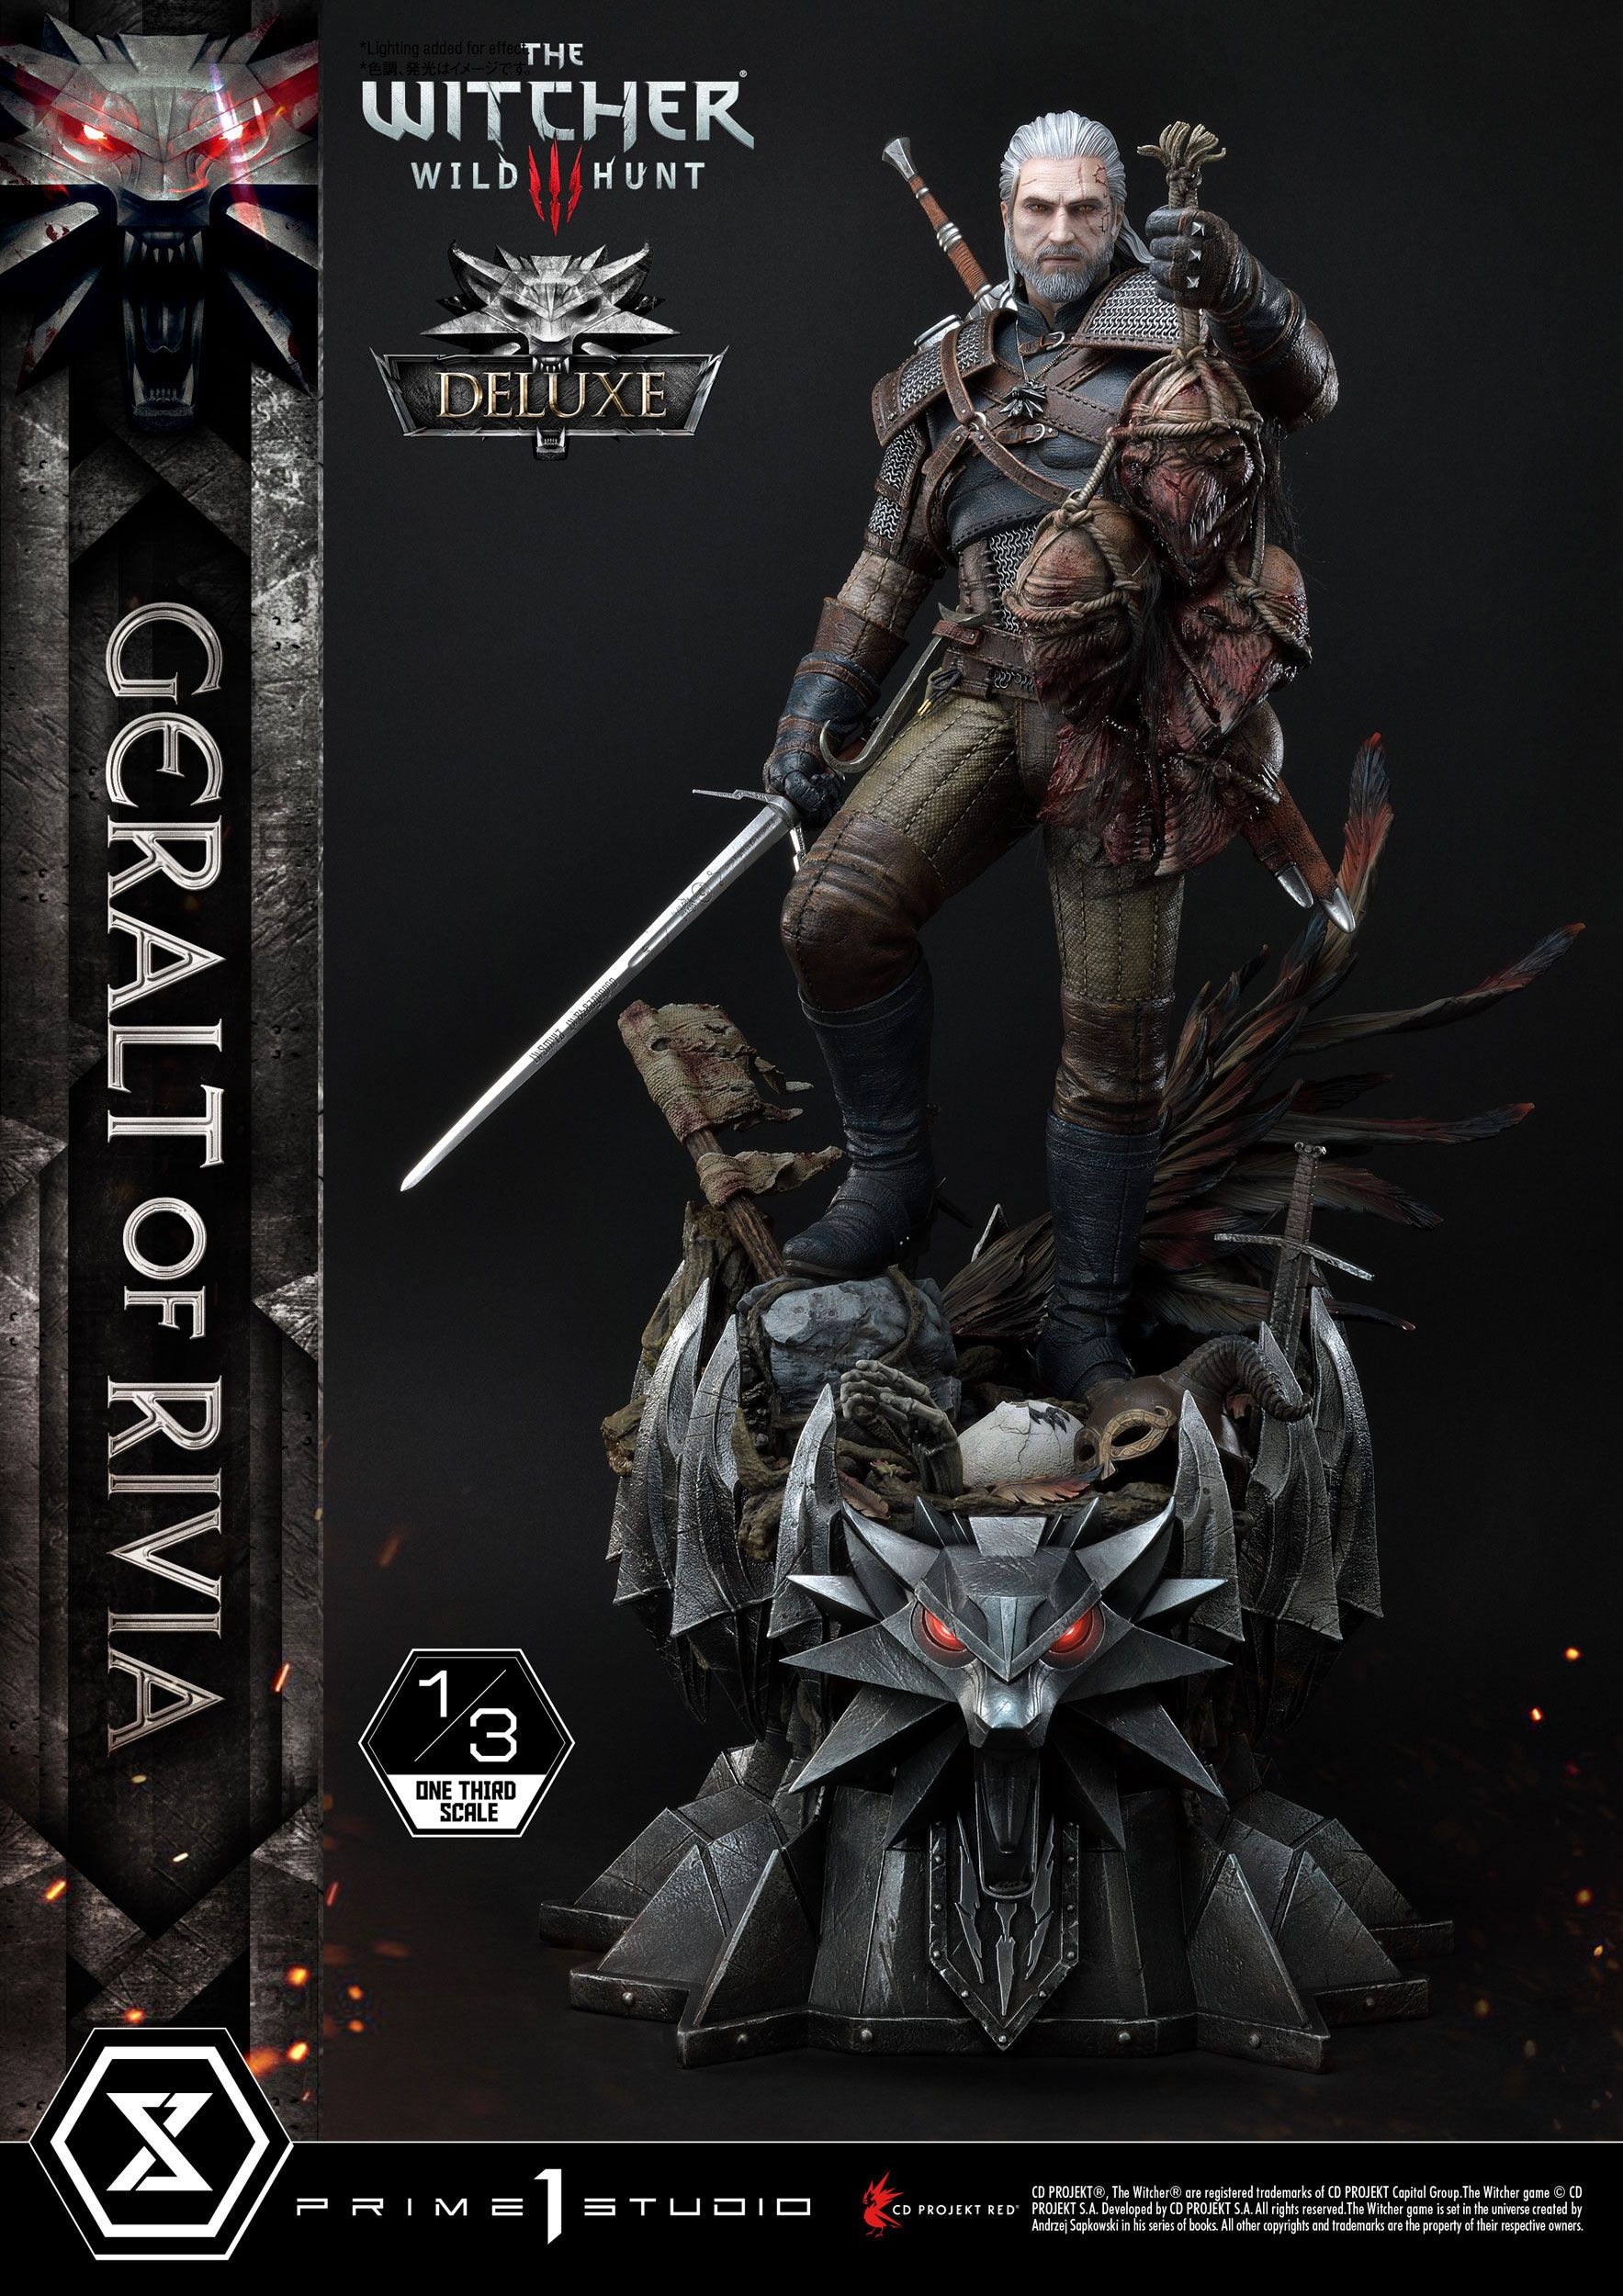 Witcher 3 Wild Hunt - socha Geralt von Riva Deluxe Version 88 cm